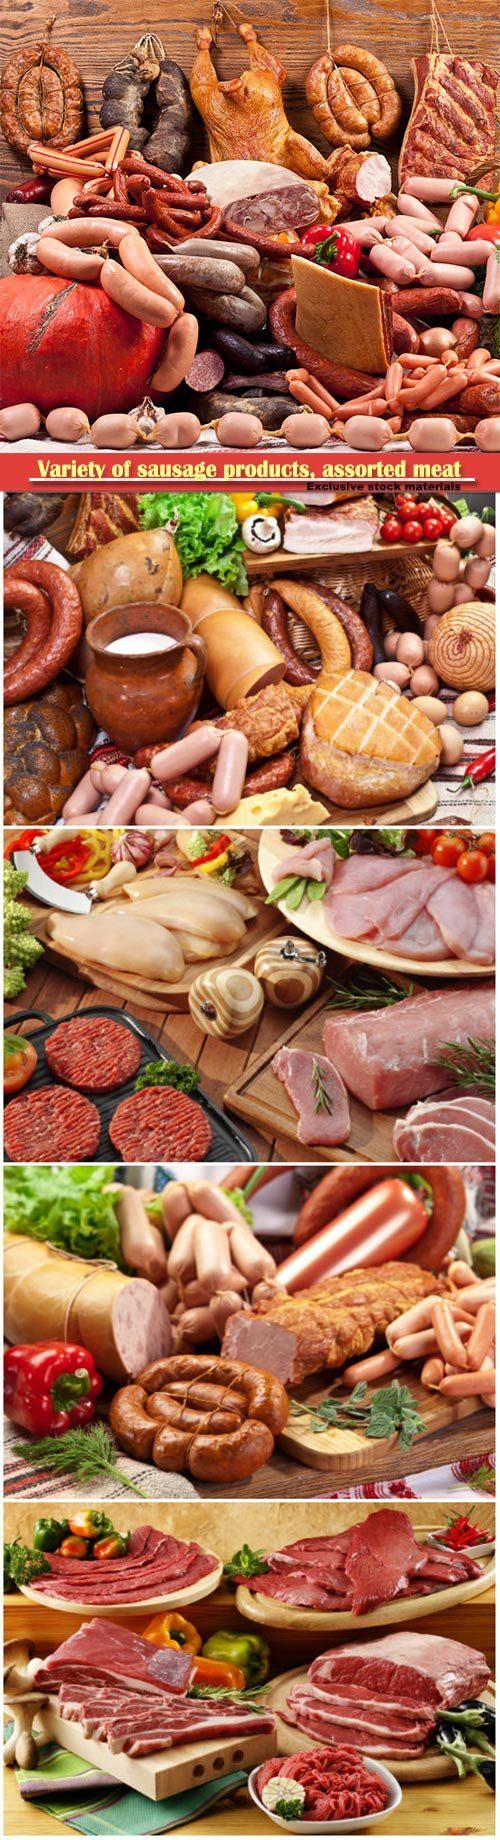 Variety of sausage products, assorted meat